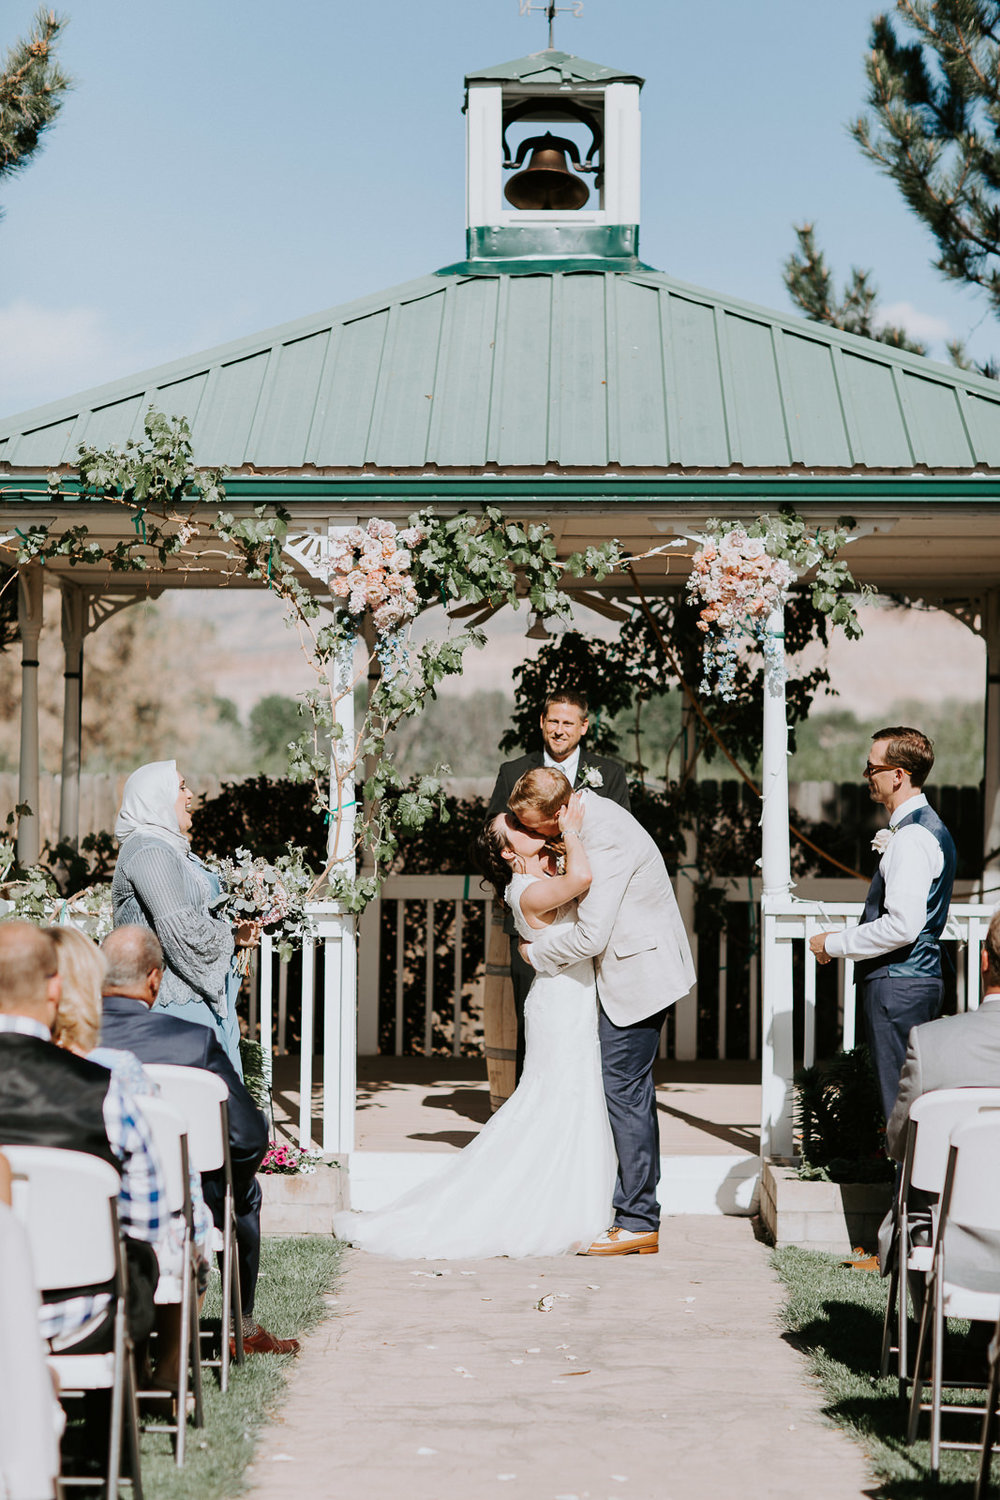 Bride and groom kissing in front of gazebo at end of wedding ceremony